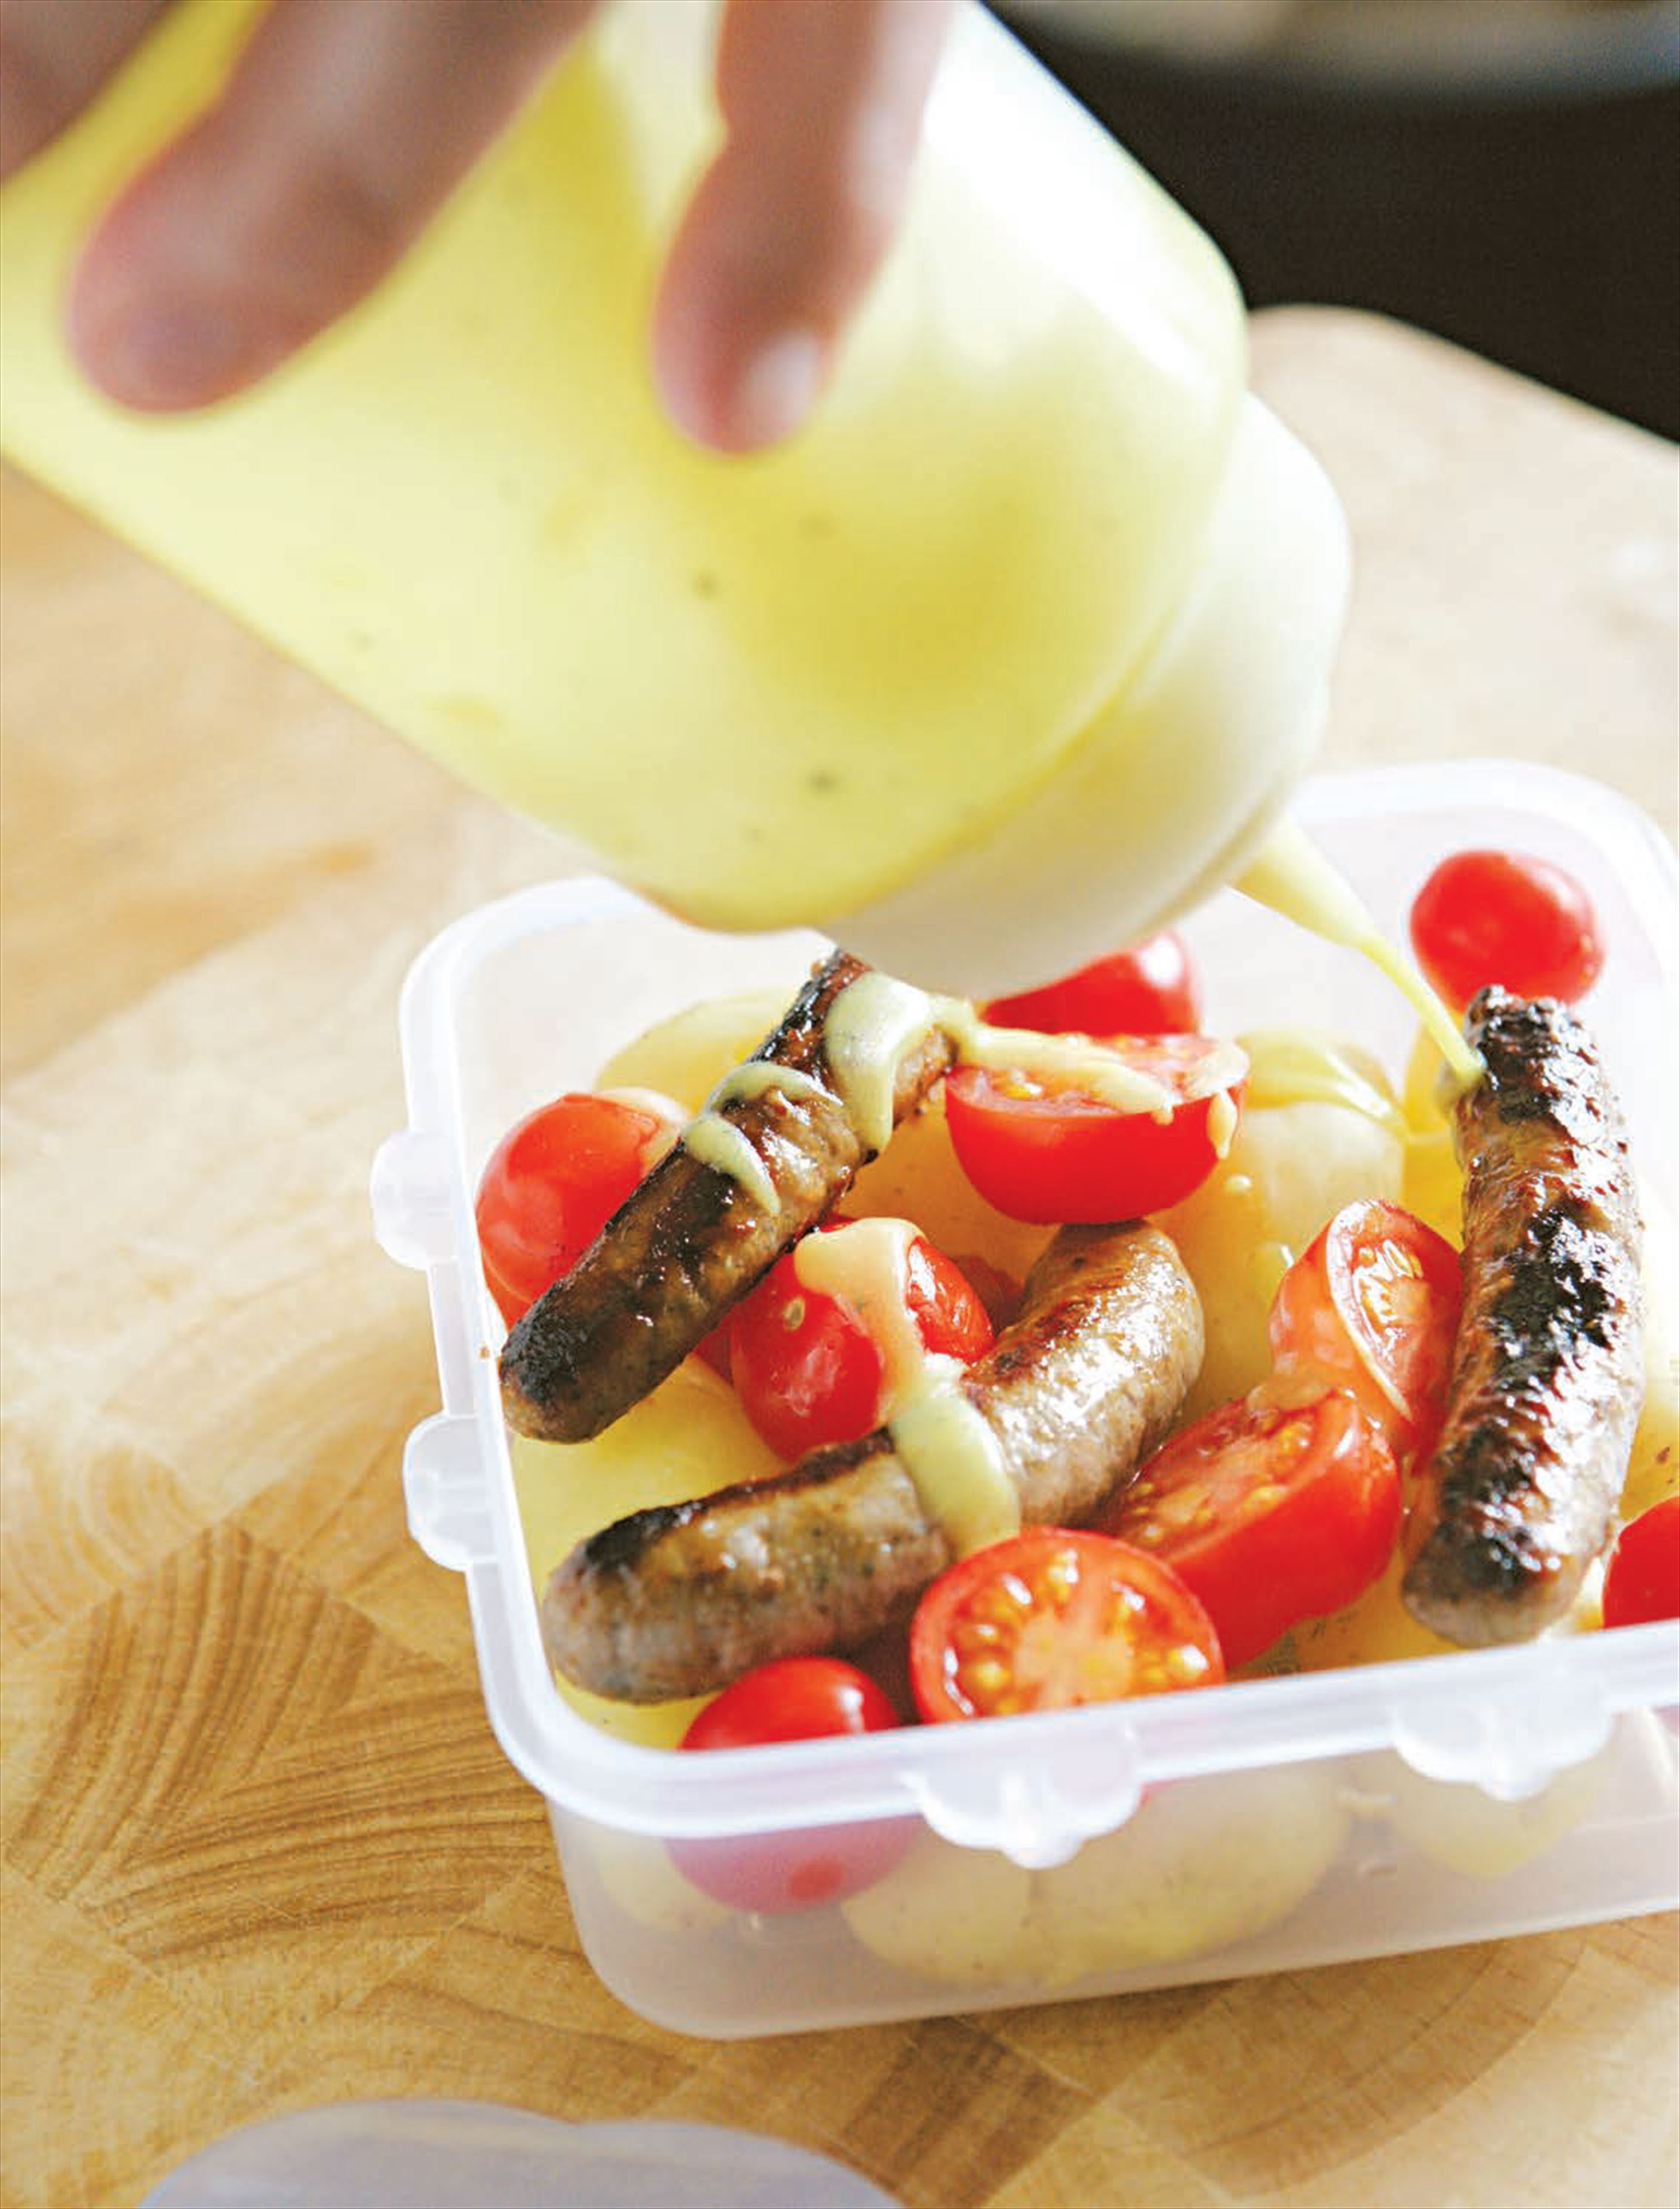 Tomato, chipolata and new potato lunch(box) with mustardy vinaigrette